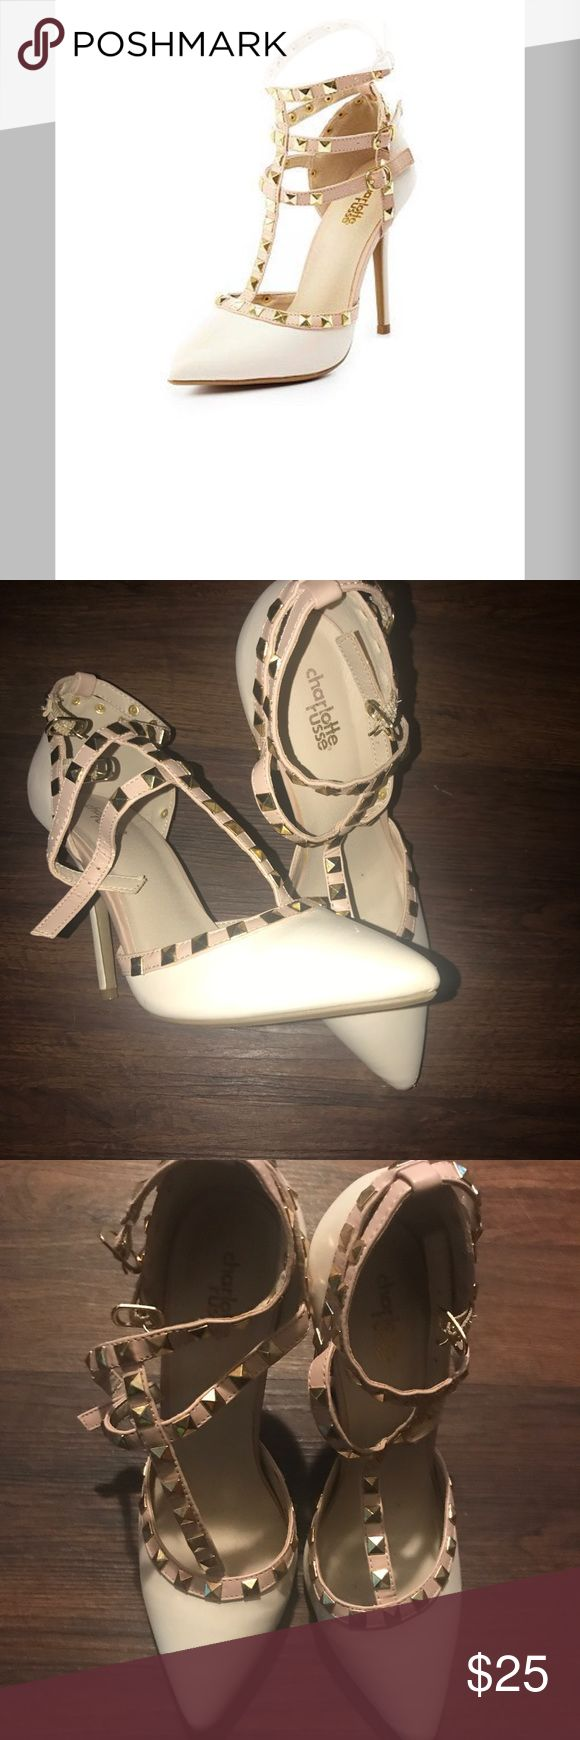 Studded Tee Strap Heels Charlotte Rousse Wild Diva Pumps in a taupe like color. There are some scuffs please view pics and ask questions if necessary. Charlotte Russe Shoes Heels